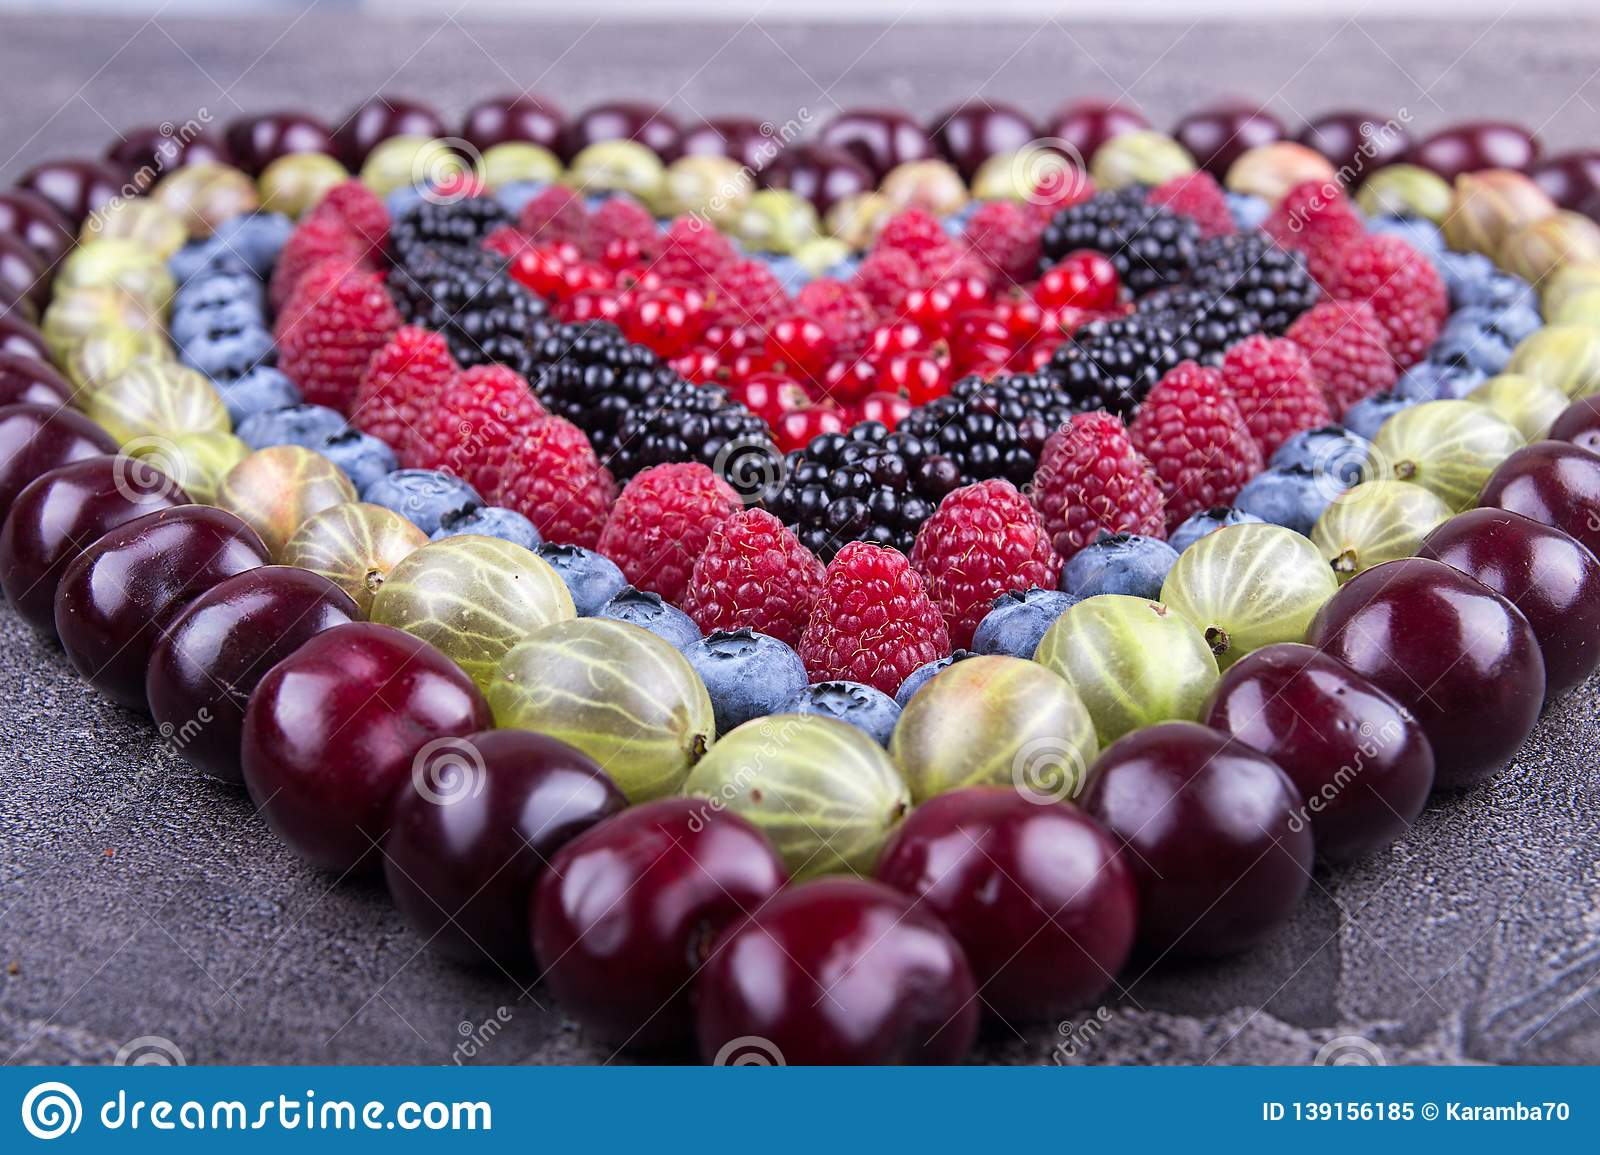 Rows of assorted fruits and berries: sweet cherry, bluberries, raspberries, red and black currant, blackberries. Helthy eating